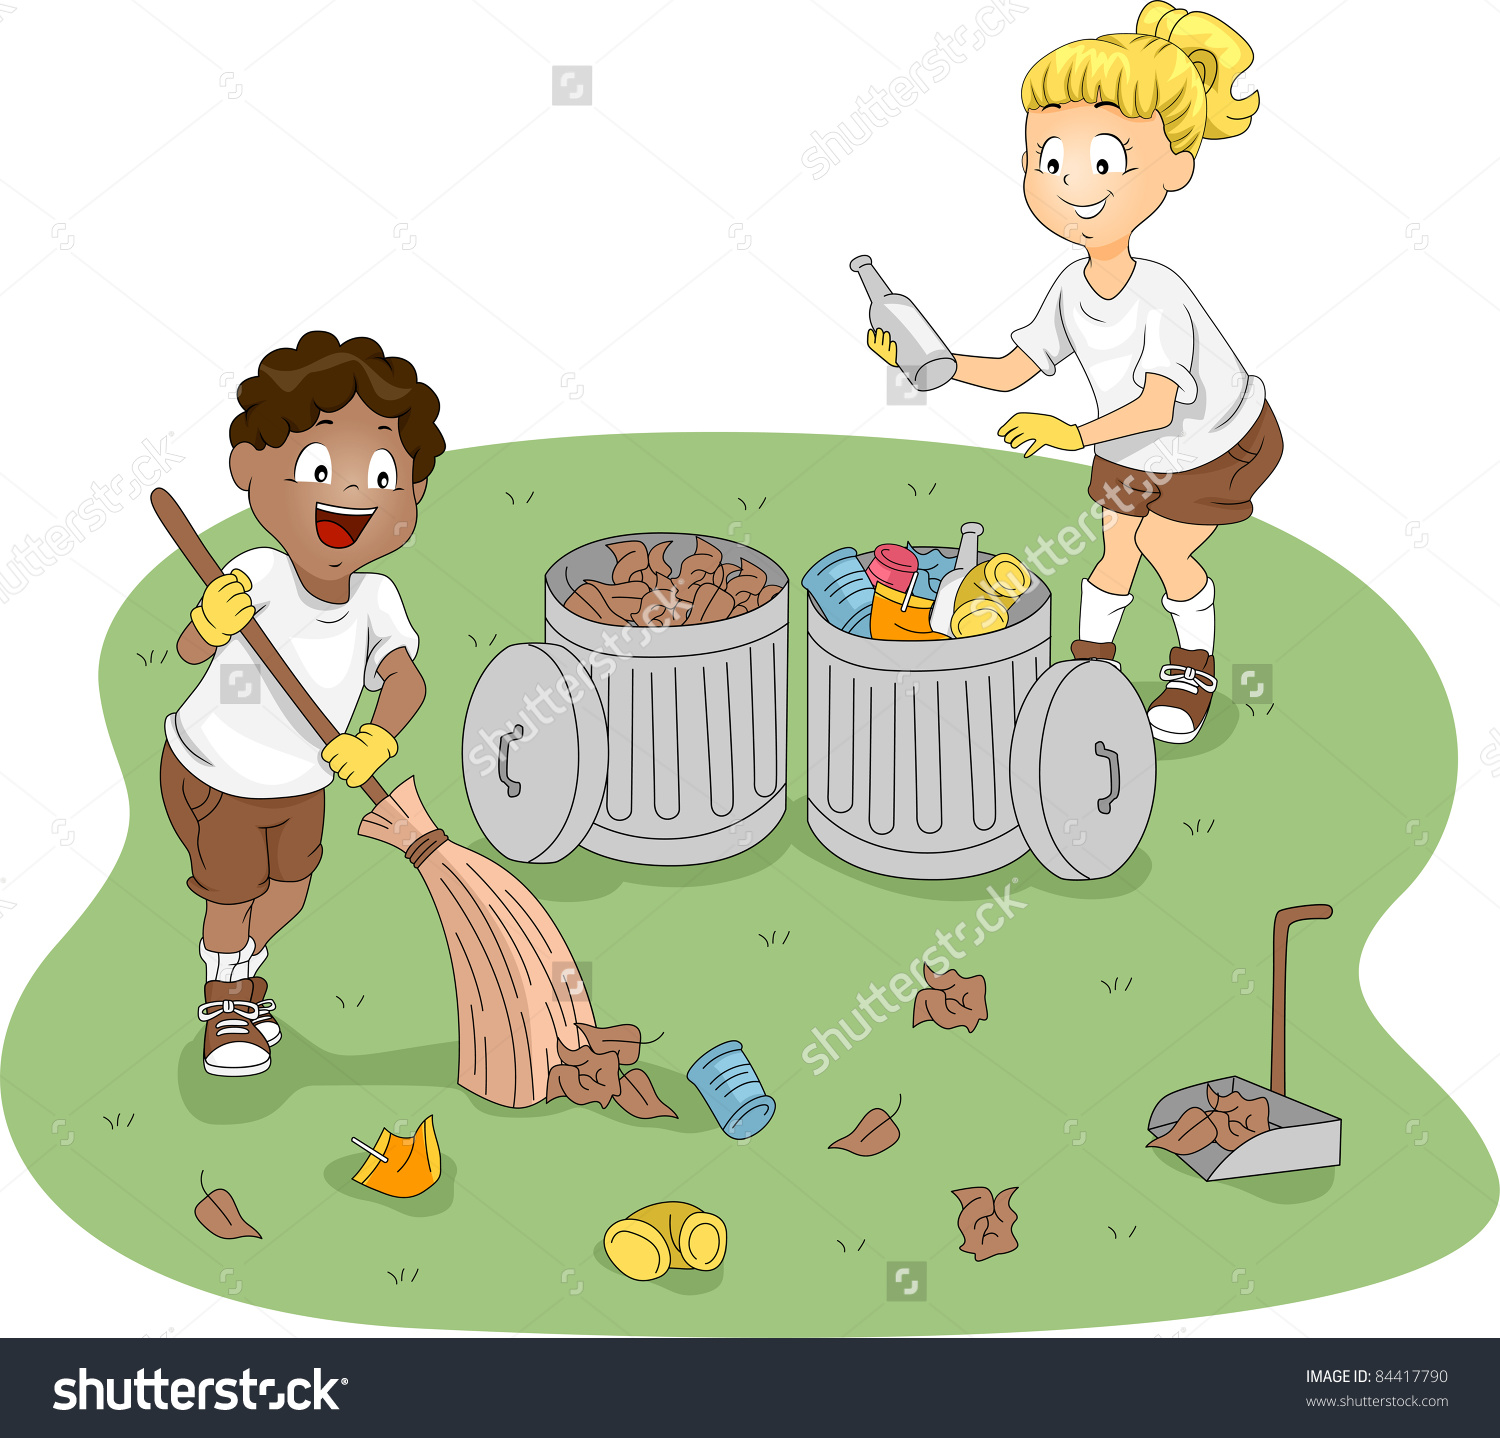 Illustration Kids Cleaning Camp Stock Vector 84417790.